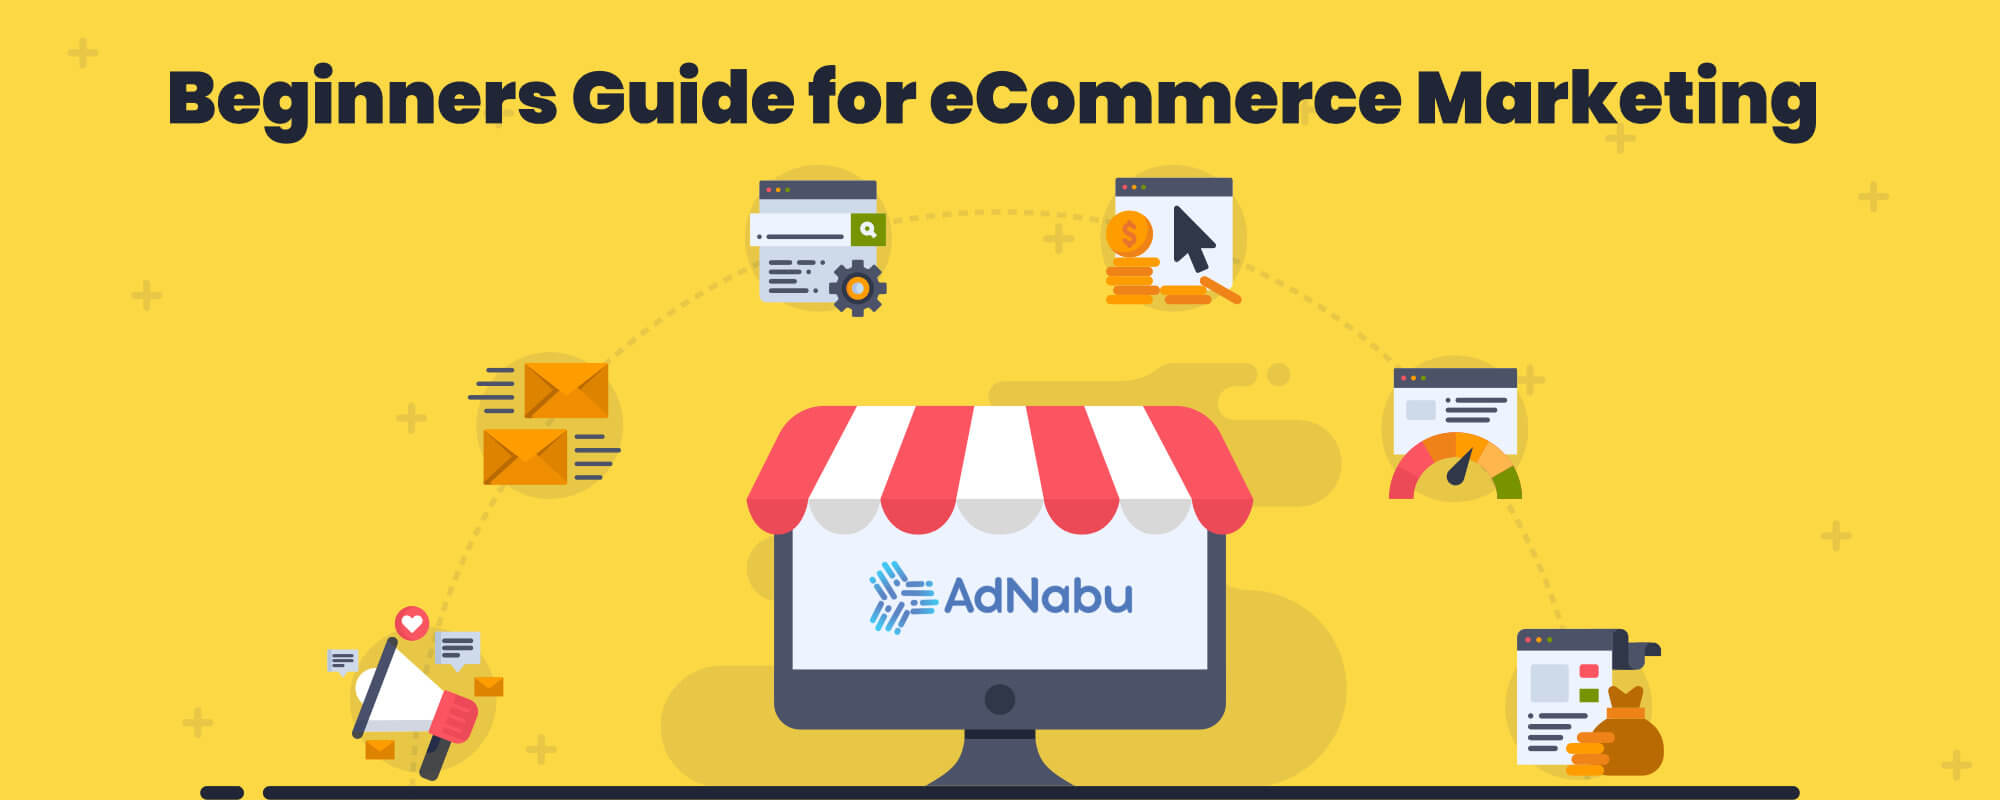 Beginners_guide_to_ecommerce_marketing_AdNabu